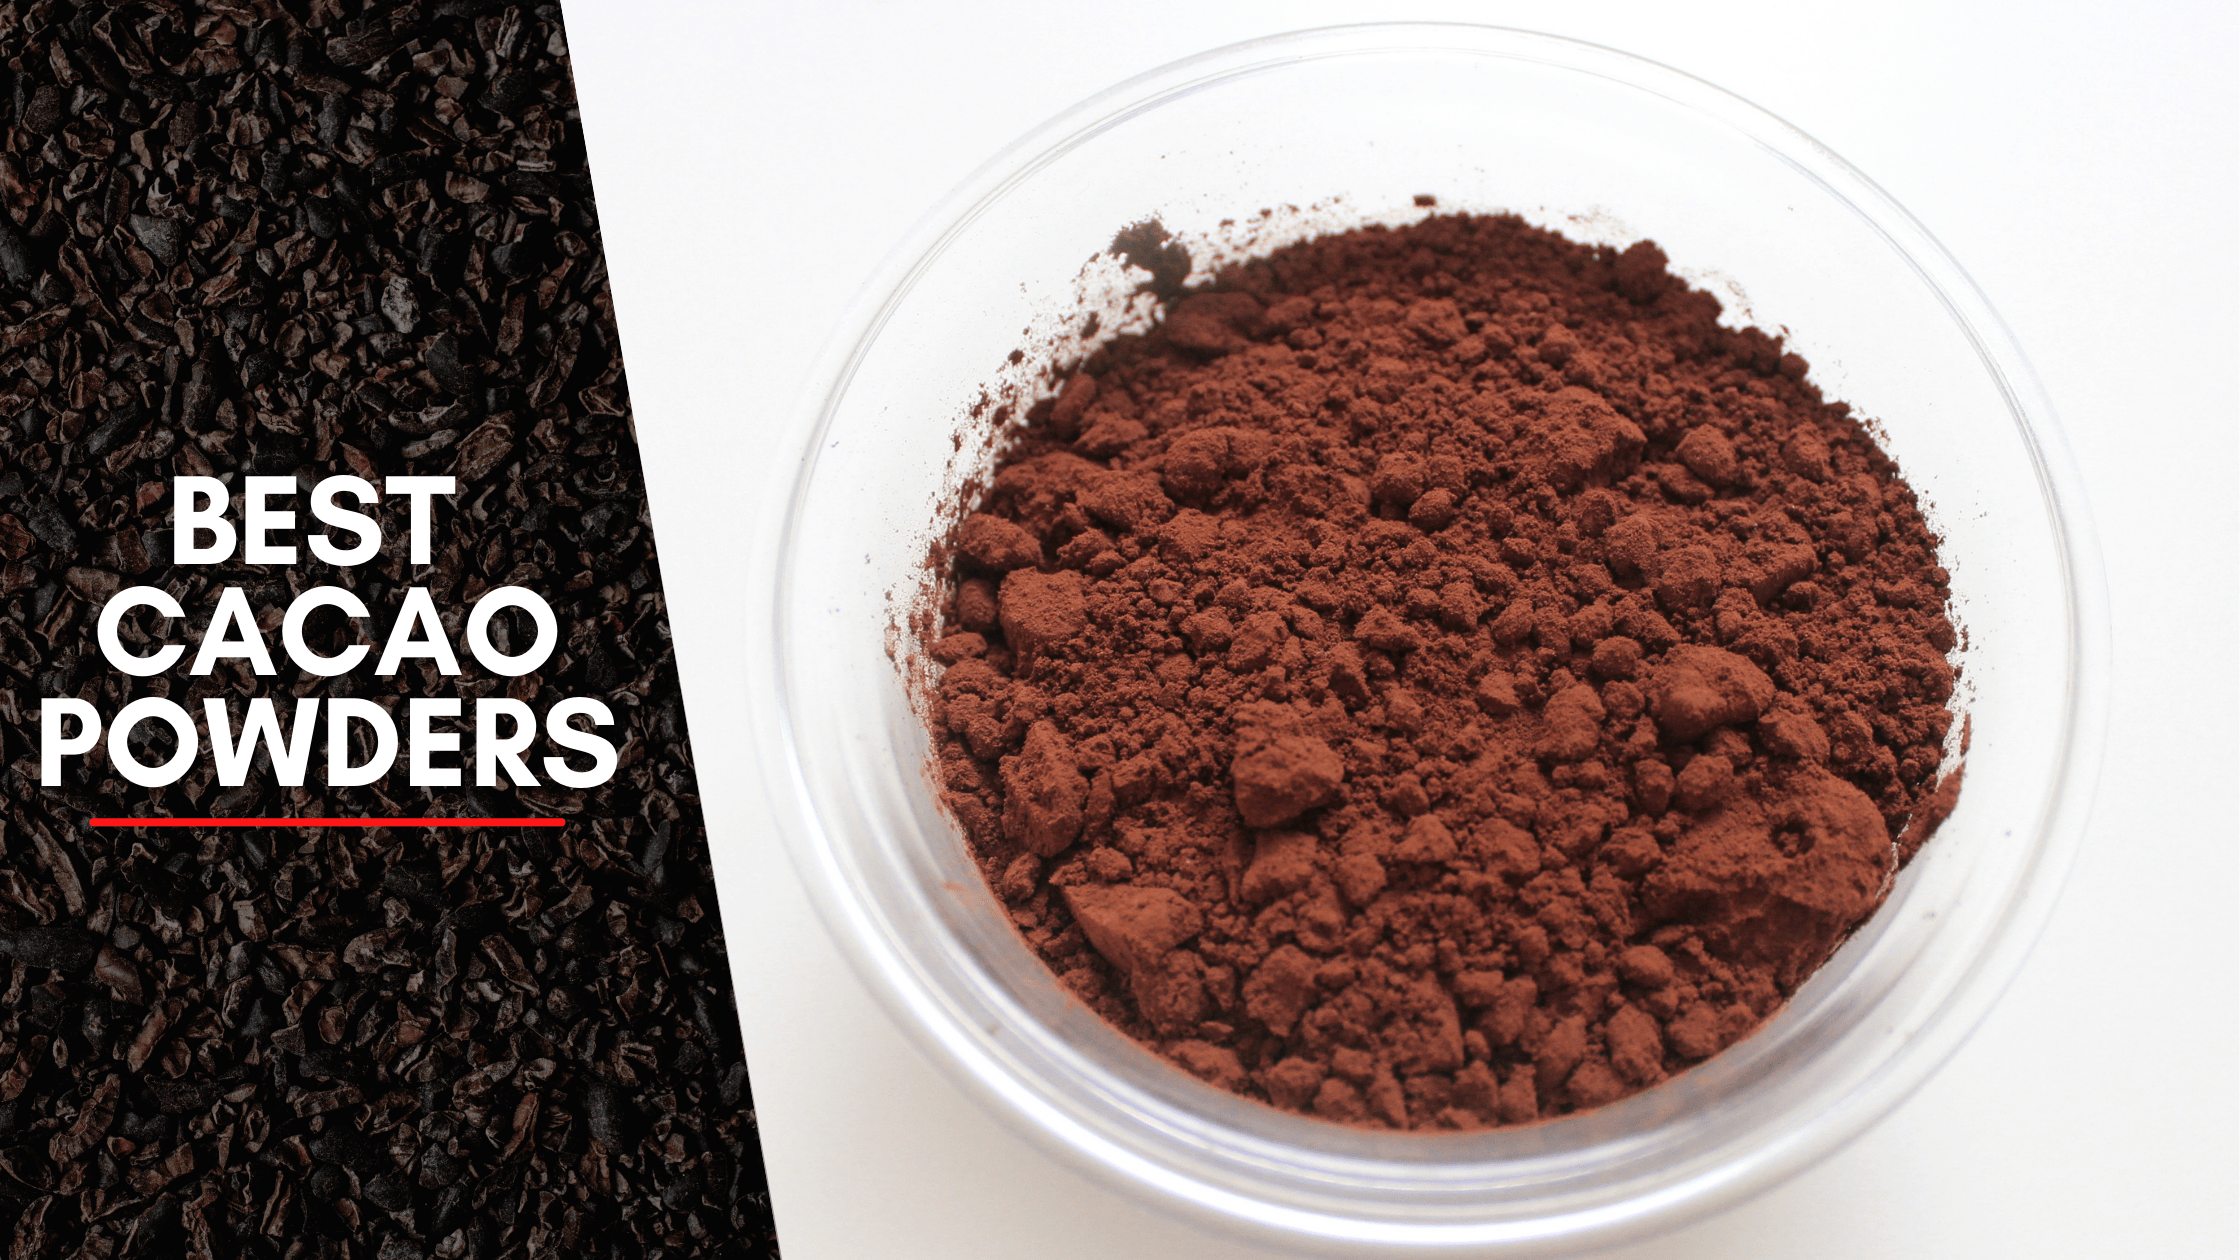 Best Cacao Powders